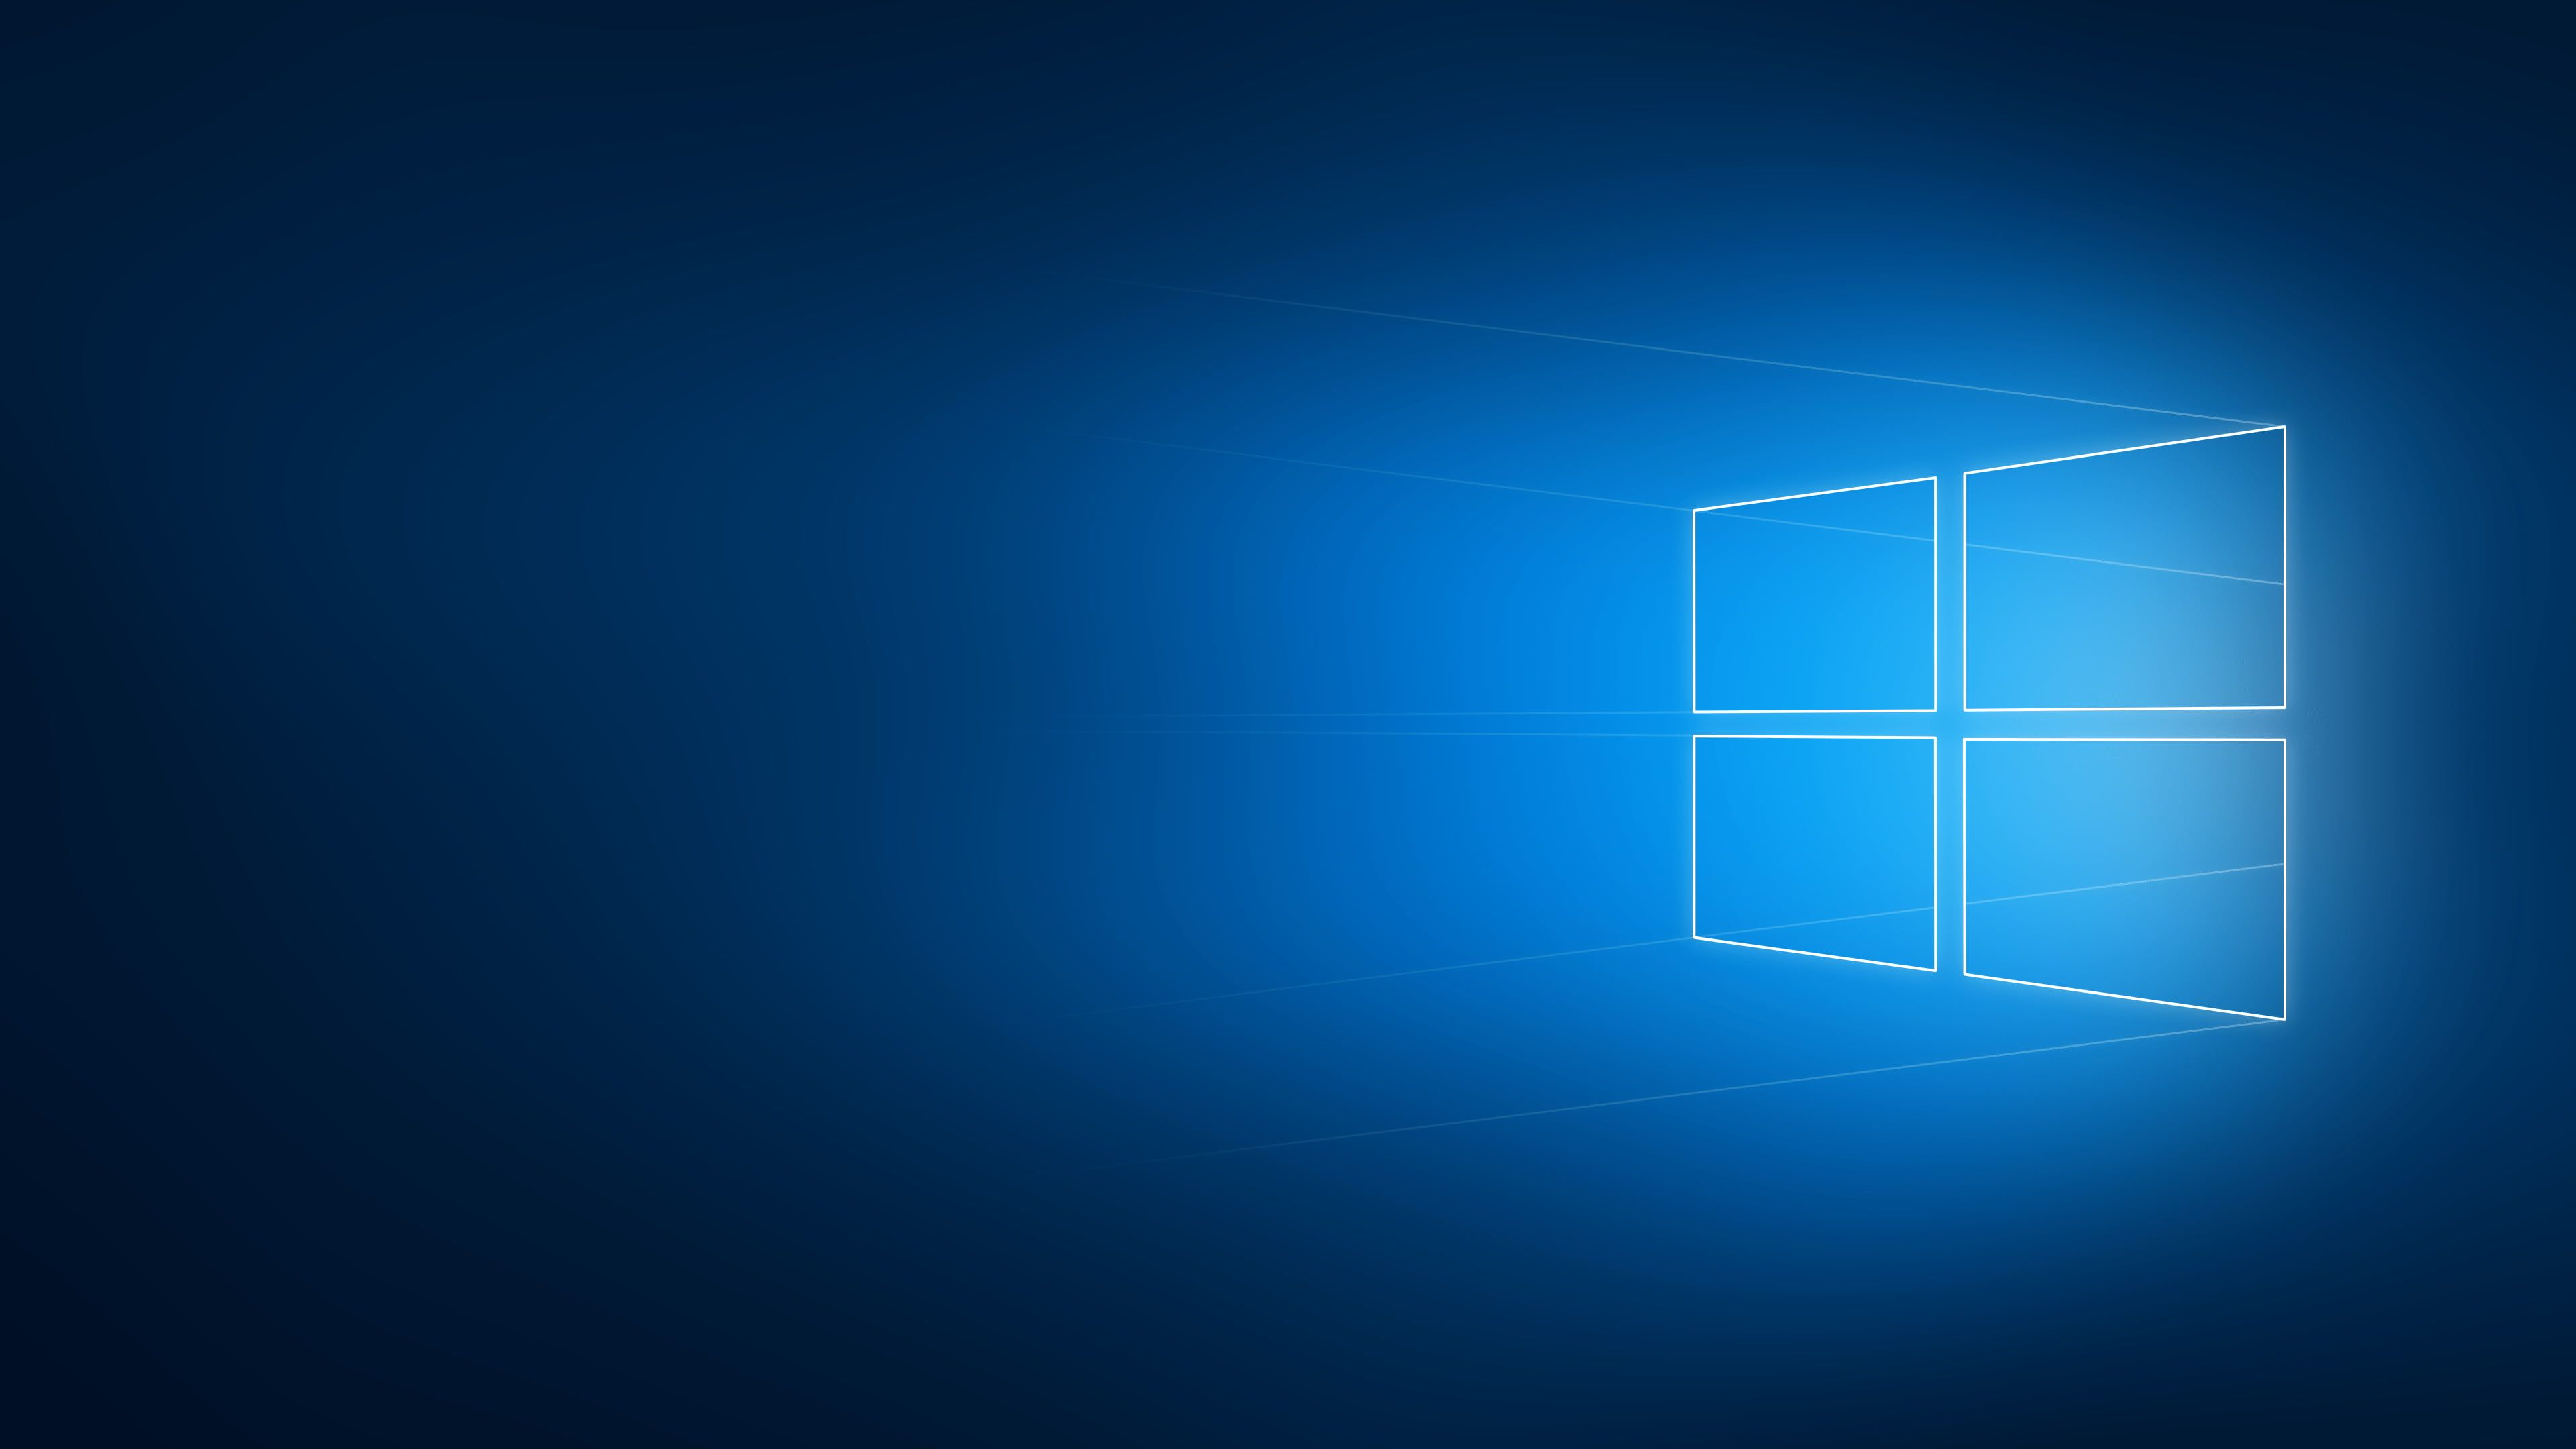 Windows Logo Windows 10 Logo Minimalism Blurred Geometry Operating System Microsoft Windows 4k Minimalist Wallpaper System Wallpaper 3840x2160 Wallpaper